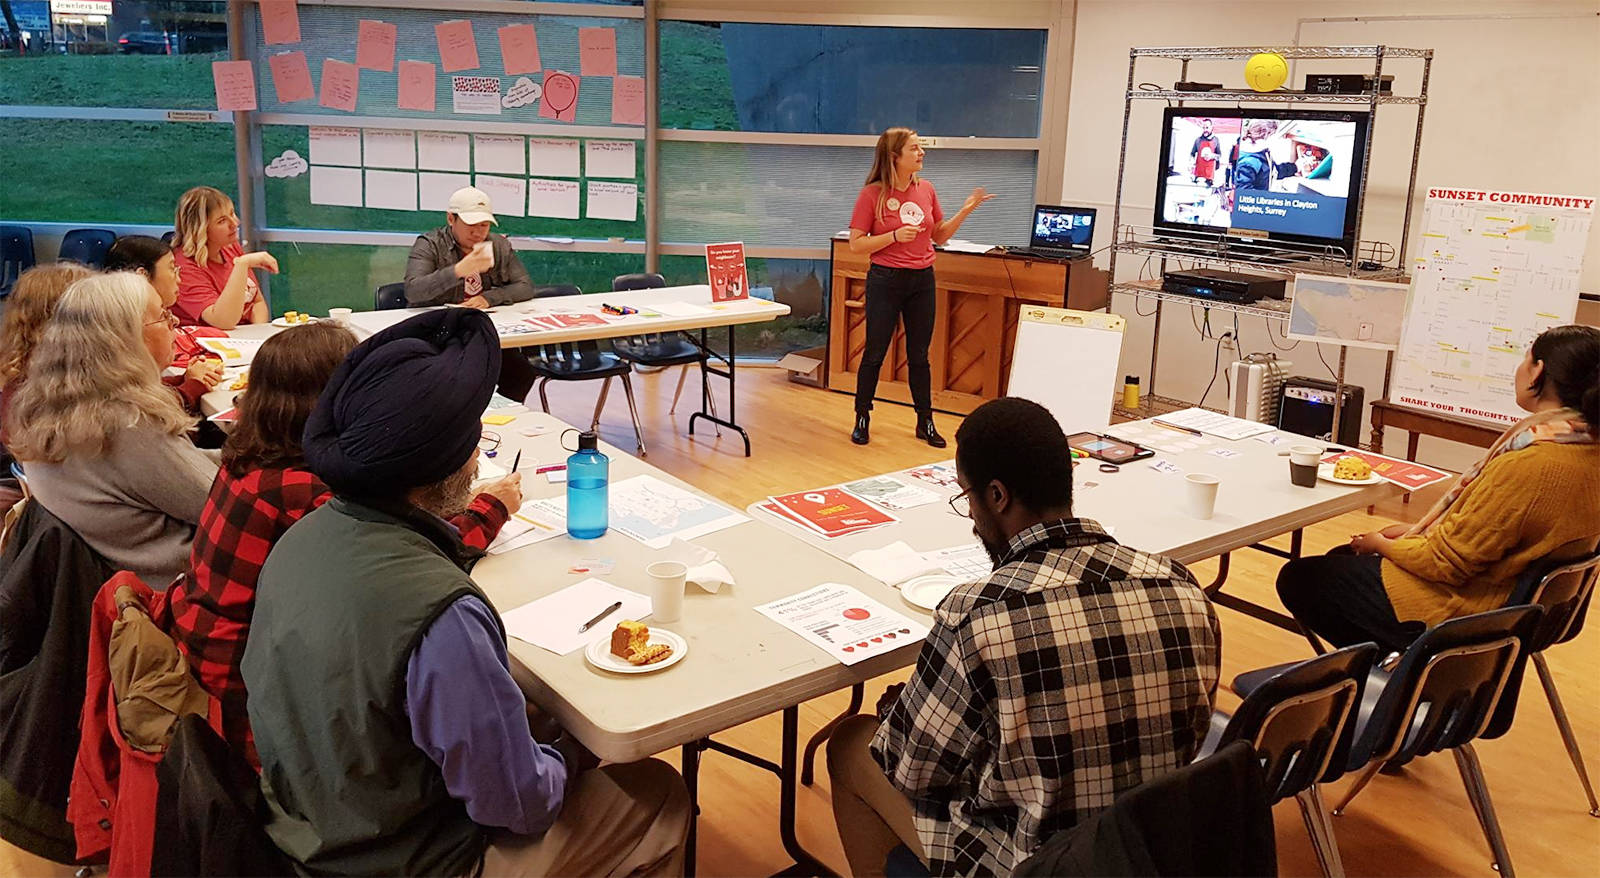 Community engagement specialists from United Way are working in grassroots ways with local residents and community agencies like the South Vancouver Neighbourhood House. In places like Sunset in Vancouver, they are exploring what residents say are the greatest assets and challenges in their neighbourhoods, and empowering them to take action.